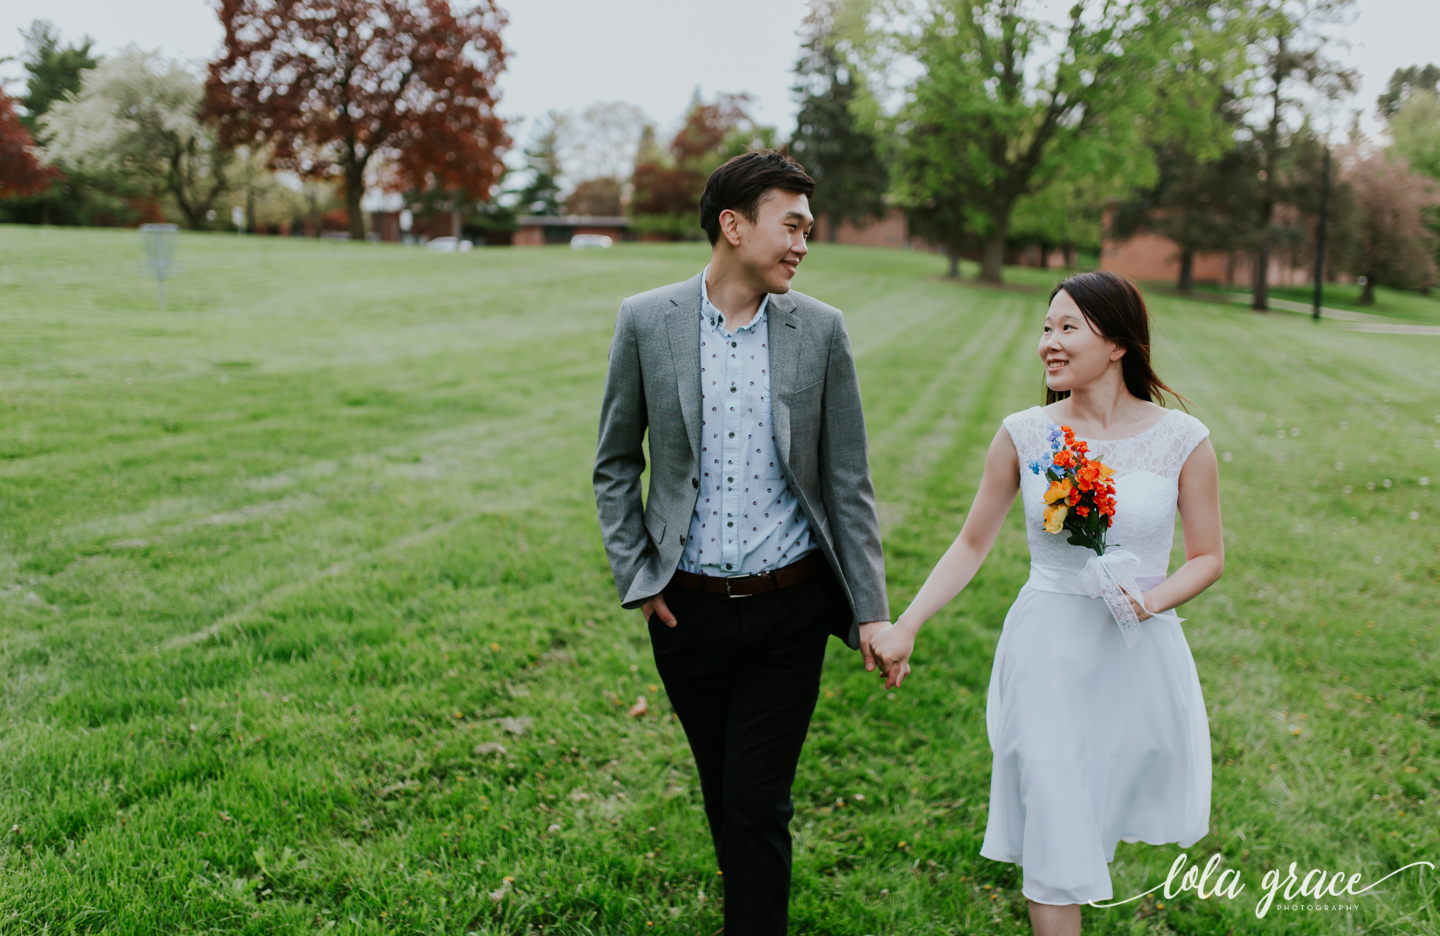 spring-ann-arbor-engagement-session-university-of-michigan-18.jpg